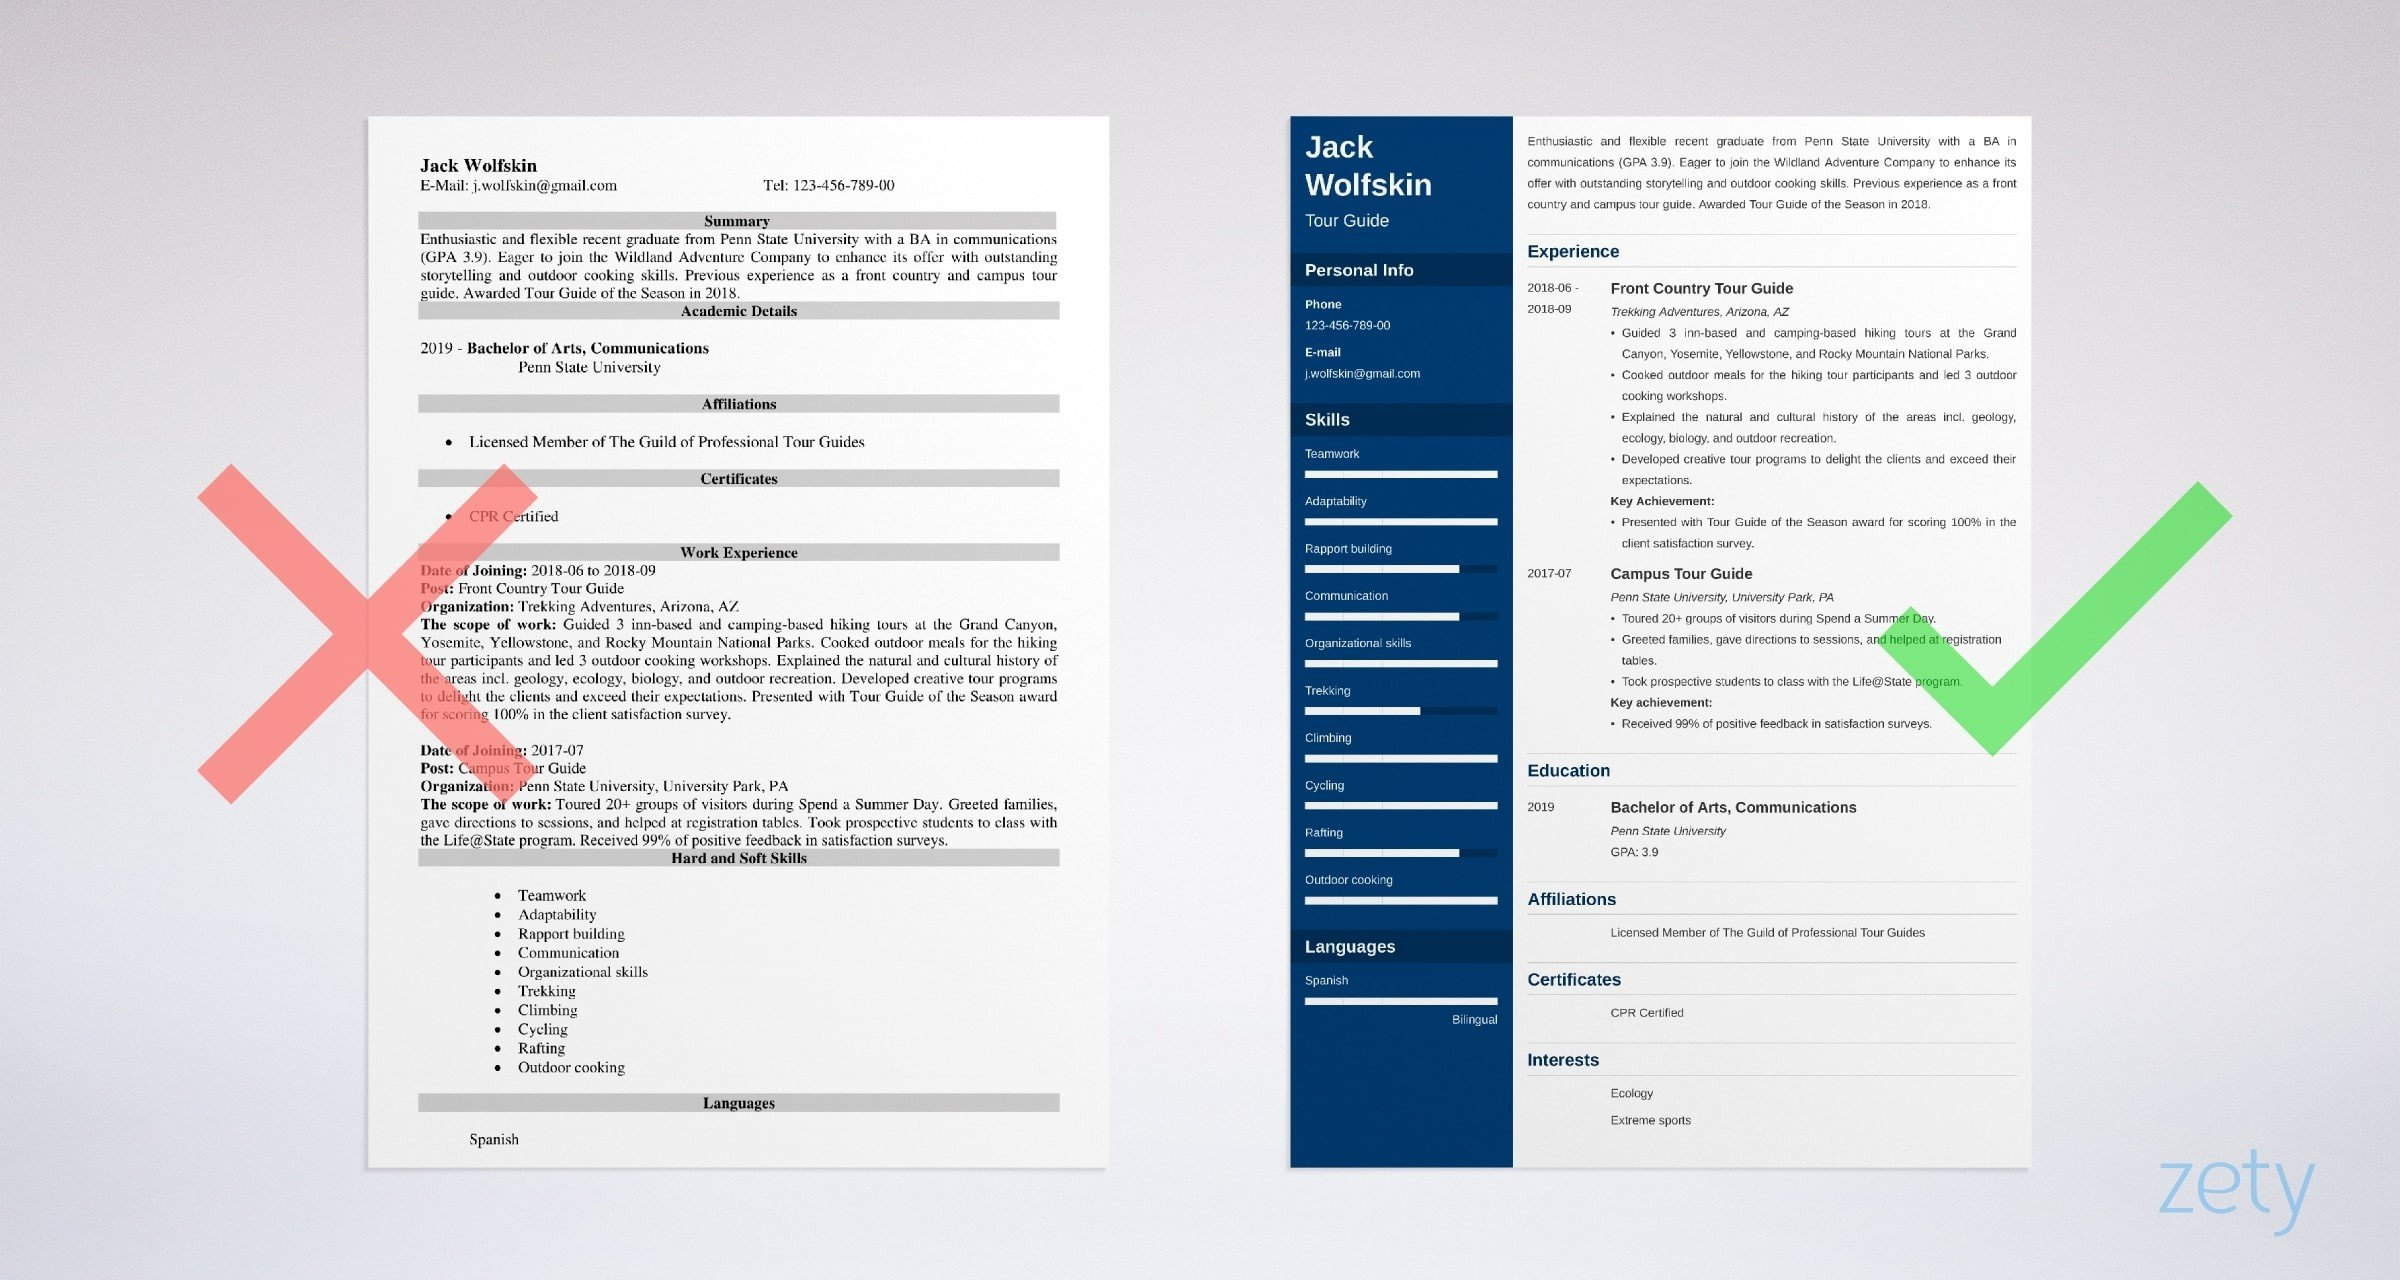 tour guide resume sample tips with job description for example free writing workshops nyc Resume Tour Guide Description For Resume